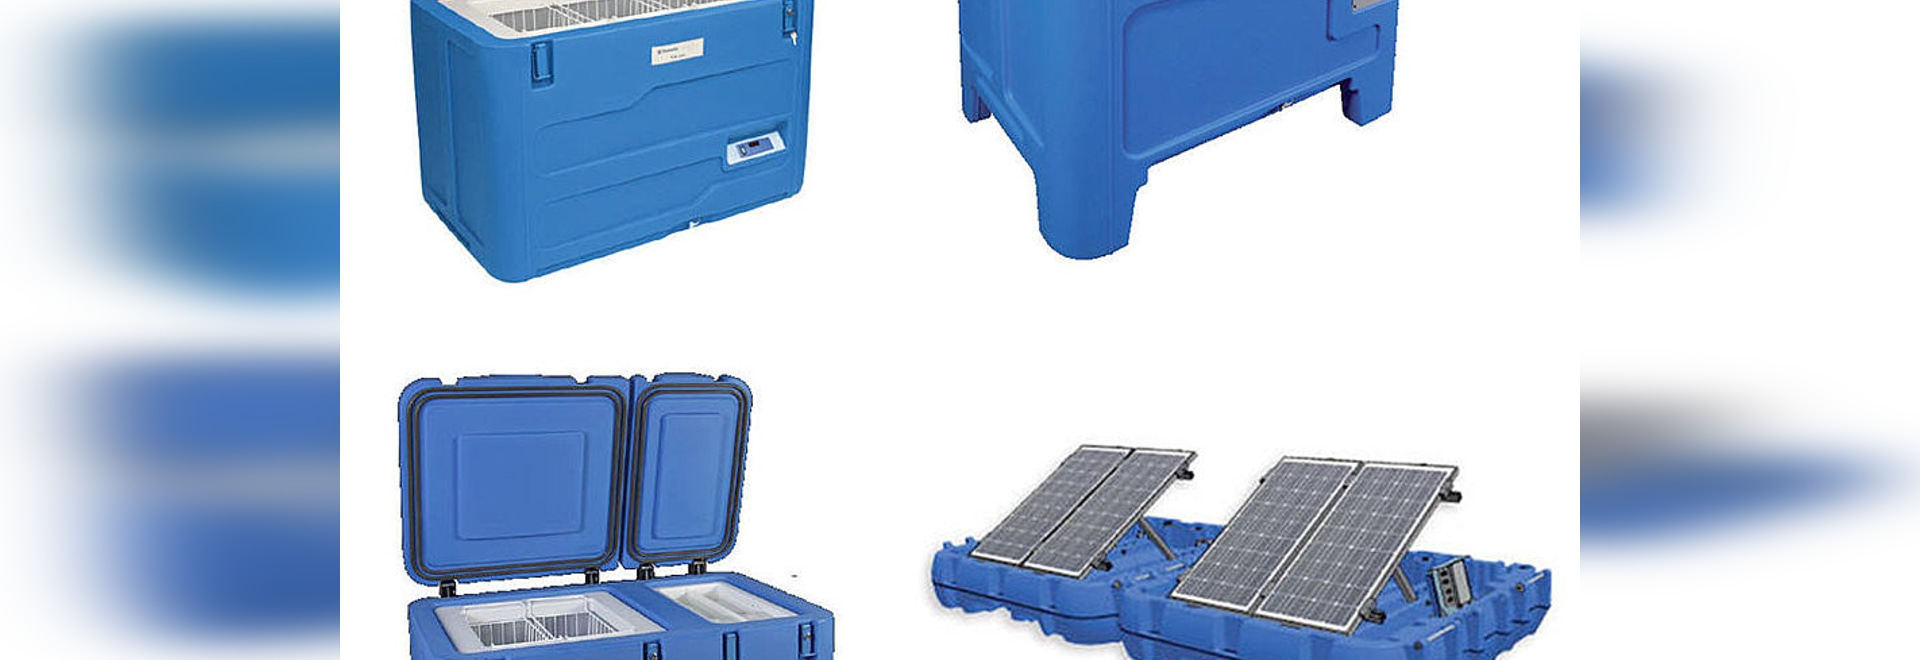 Save the Planet With Solar Direct Drive Refrigerators & Freezers